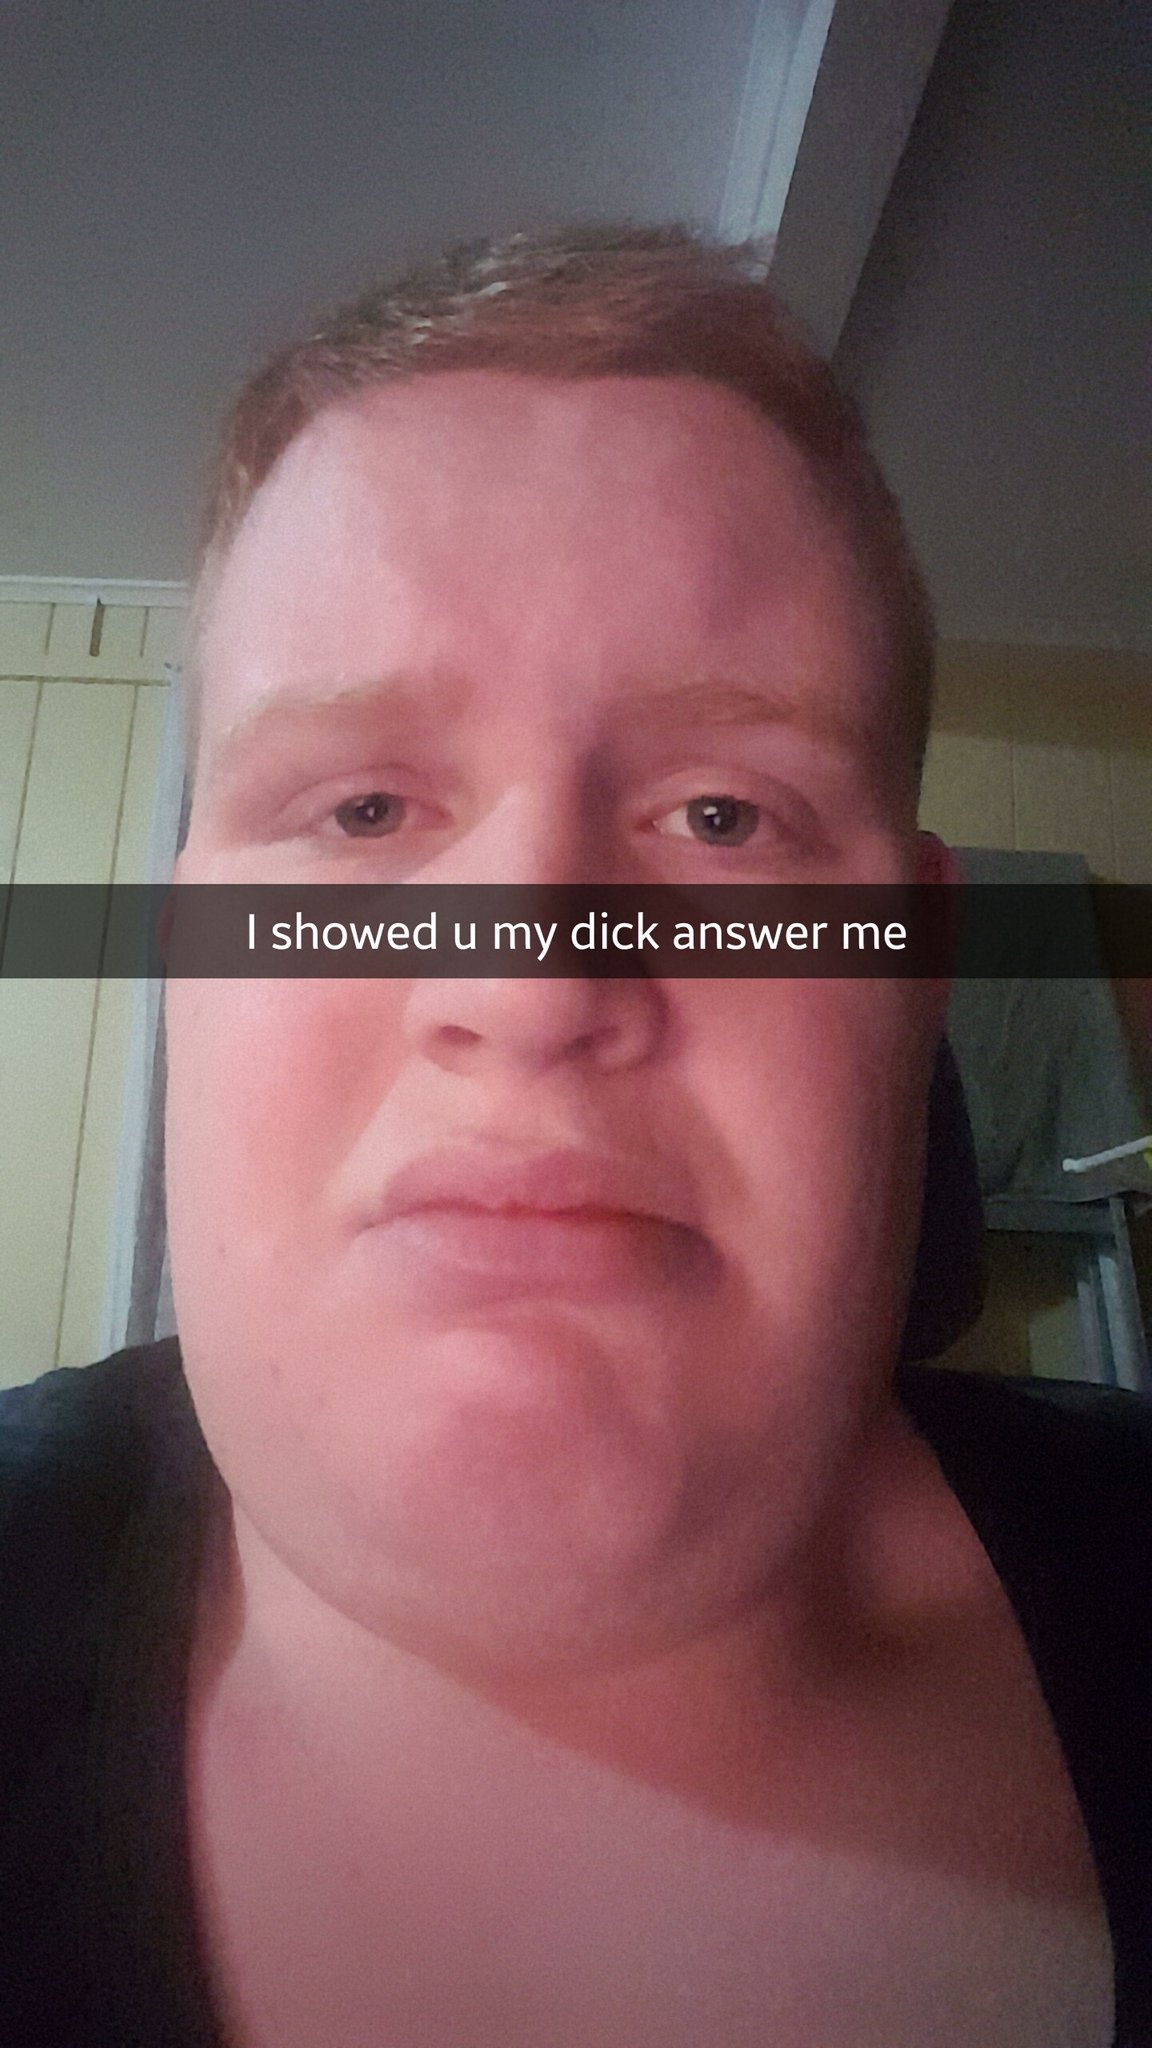 I Showed You My Dick Awnser Me